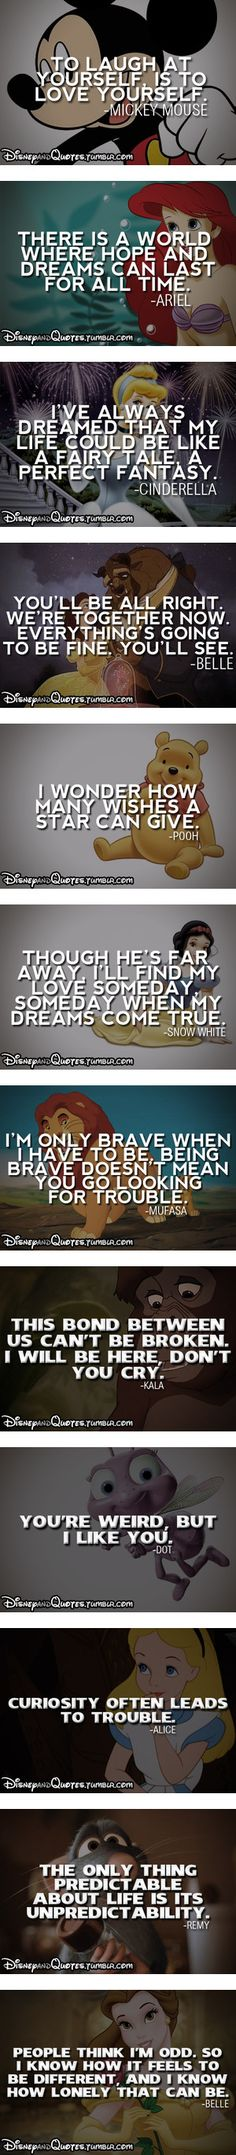 I am only Brave when I have to be. Being Brave all the time doesn't mean you go looking for trouble.